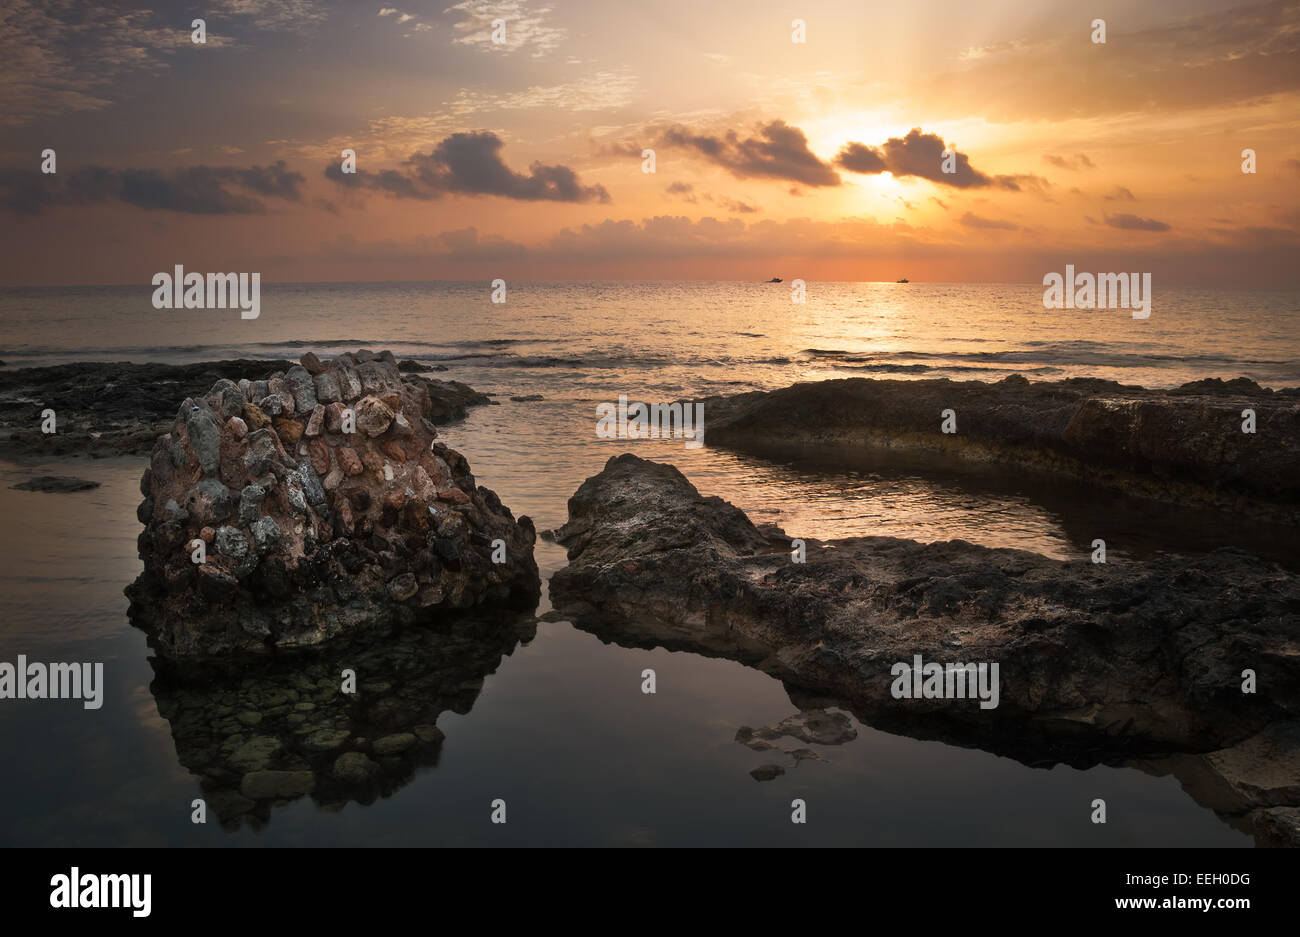 Sunset over the Sea and Rocky Coast with Ancient Ruins in Mahdia, Tunisia - Stock Image